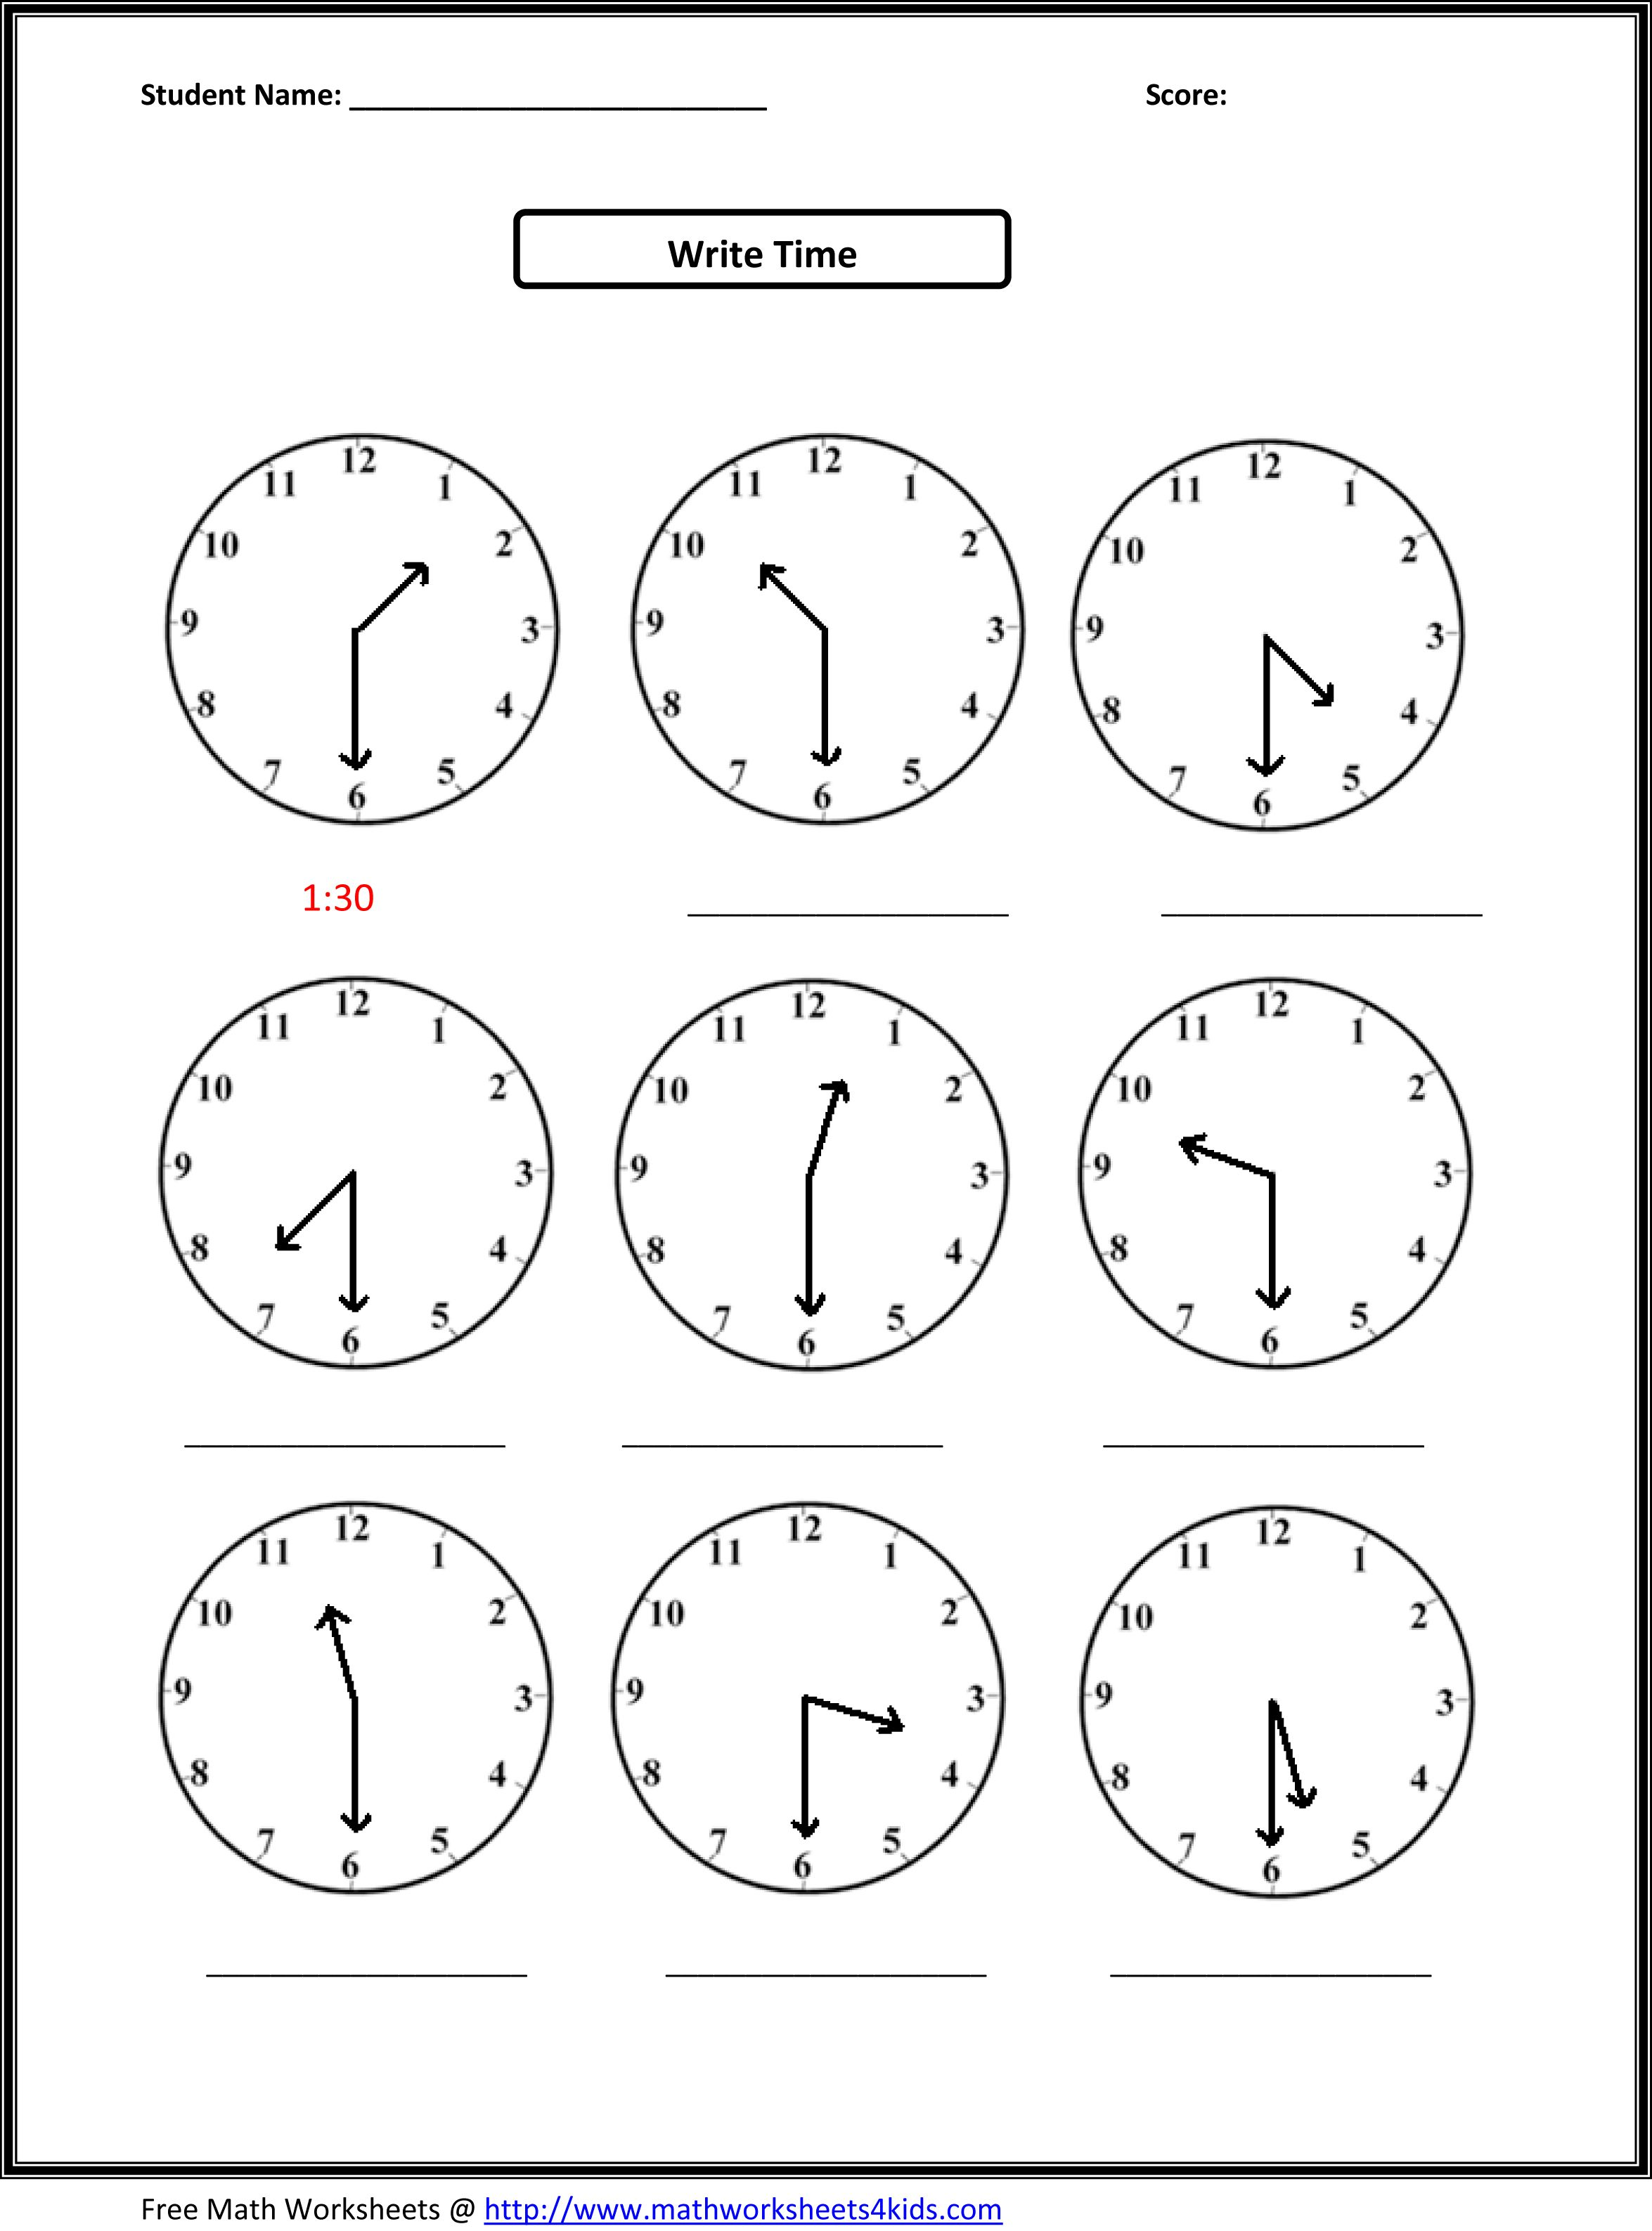 Proatmealus  Remarkable Worksheet On Time For Grade   Reocurent With Heavenly Free Printable Telling Time Worksheets Nd Grade  Reocurent With Nice Write Numbers  Worksheet Also Antonyms Worksheet For Grade  In Addition Or Sound Phonics Worksheets And Kindergarten Name Worksheets As Well As Grade  Comprehension Worksheets Additionally English Worksheet For Class  From Reocurentcom With Proatmealus  Heavenly Worksheet On Time For Grade   Reocurent With Nice Free Printable Telling Time Worksheets Nd Grade  Reocurent And Remarkable Write Numbers  Worksheet Also Antonyms Worksheet For Grade  In Addition Or Sound Phonics Worksheets From Reocurentcom